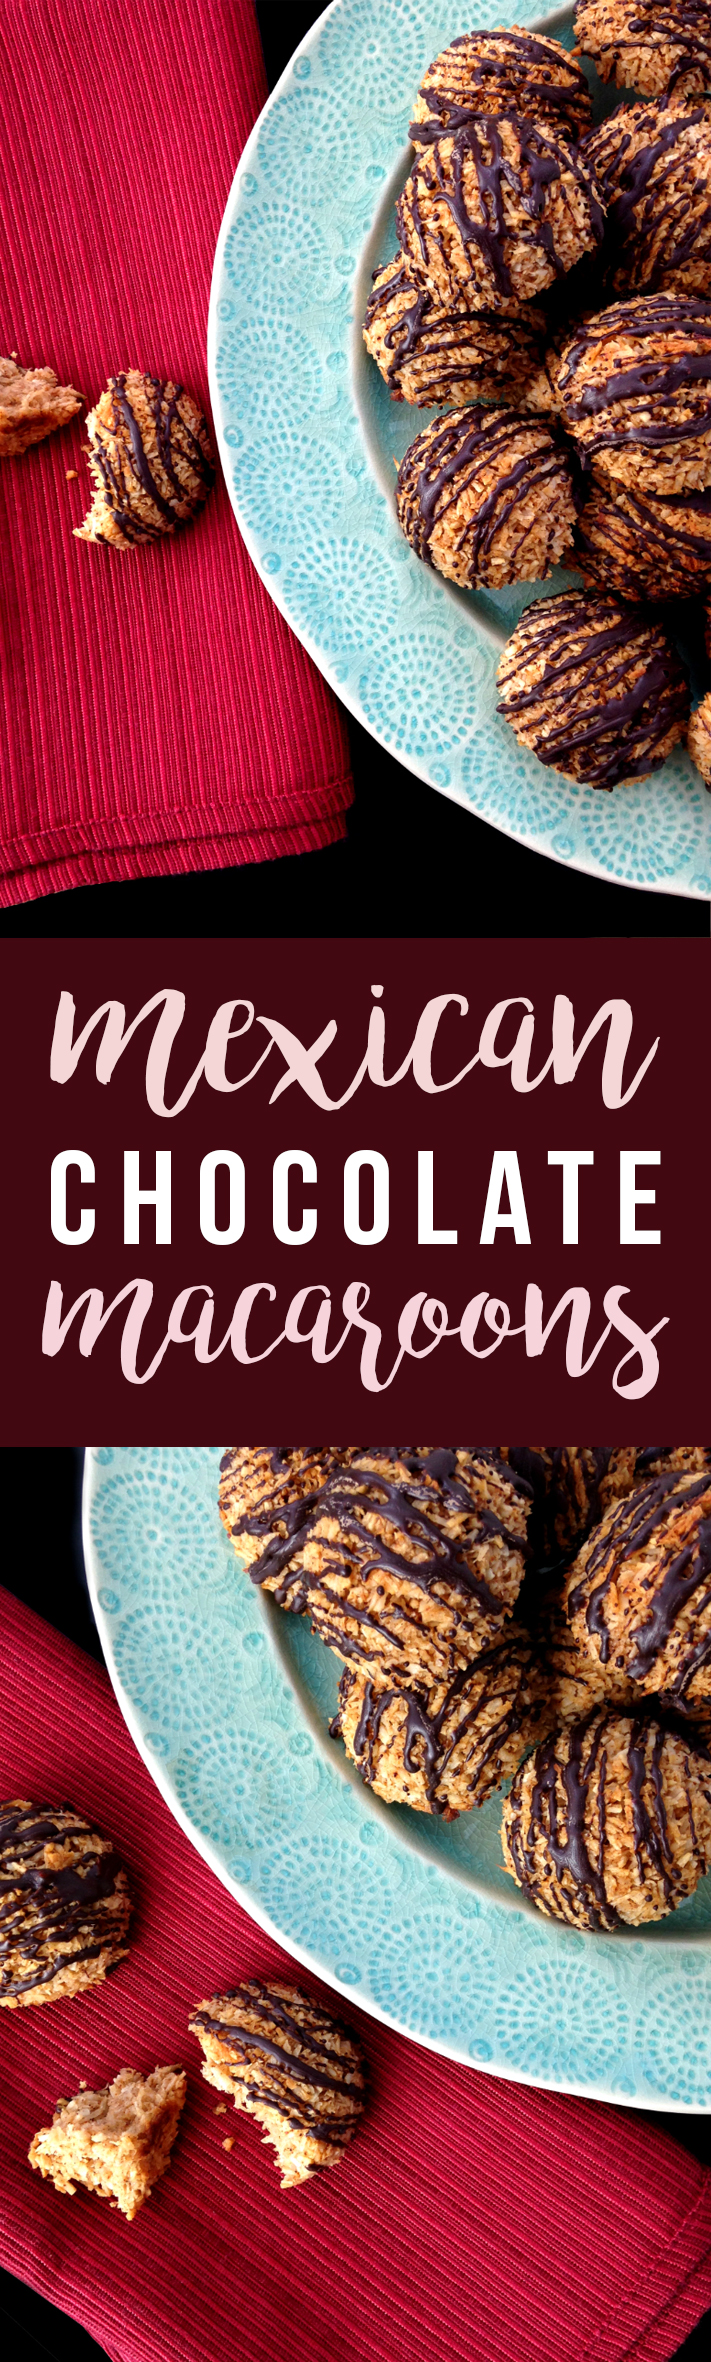 Mexican Chocolate Macaroons | Fresh Planet Flavor